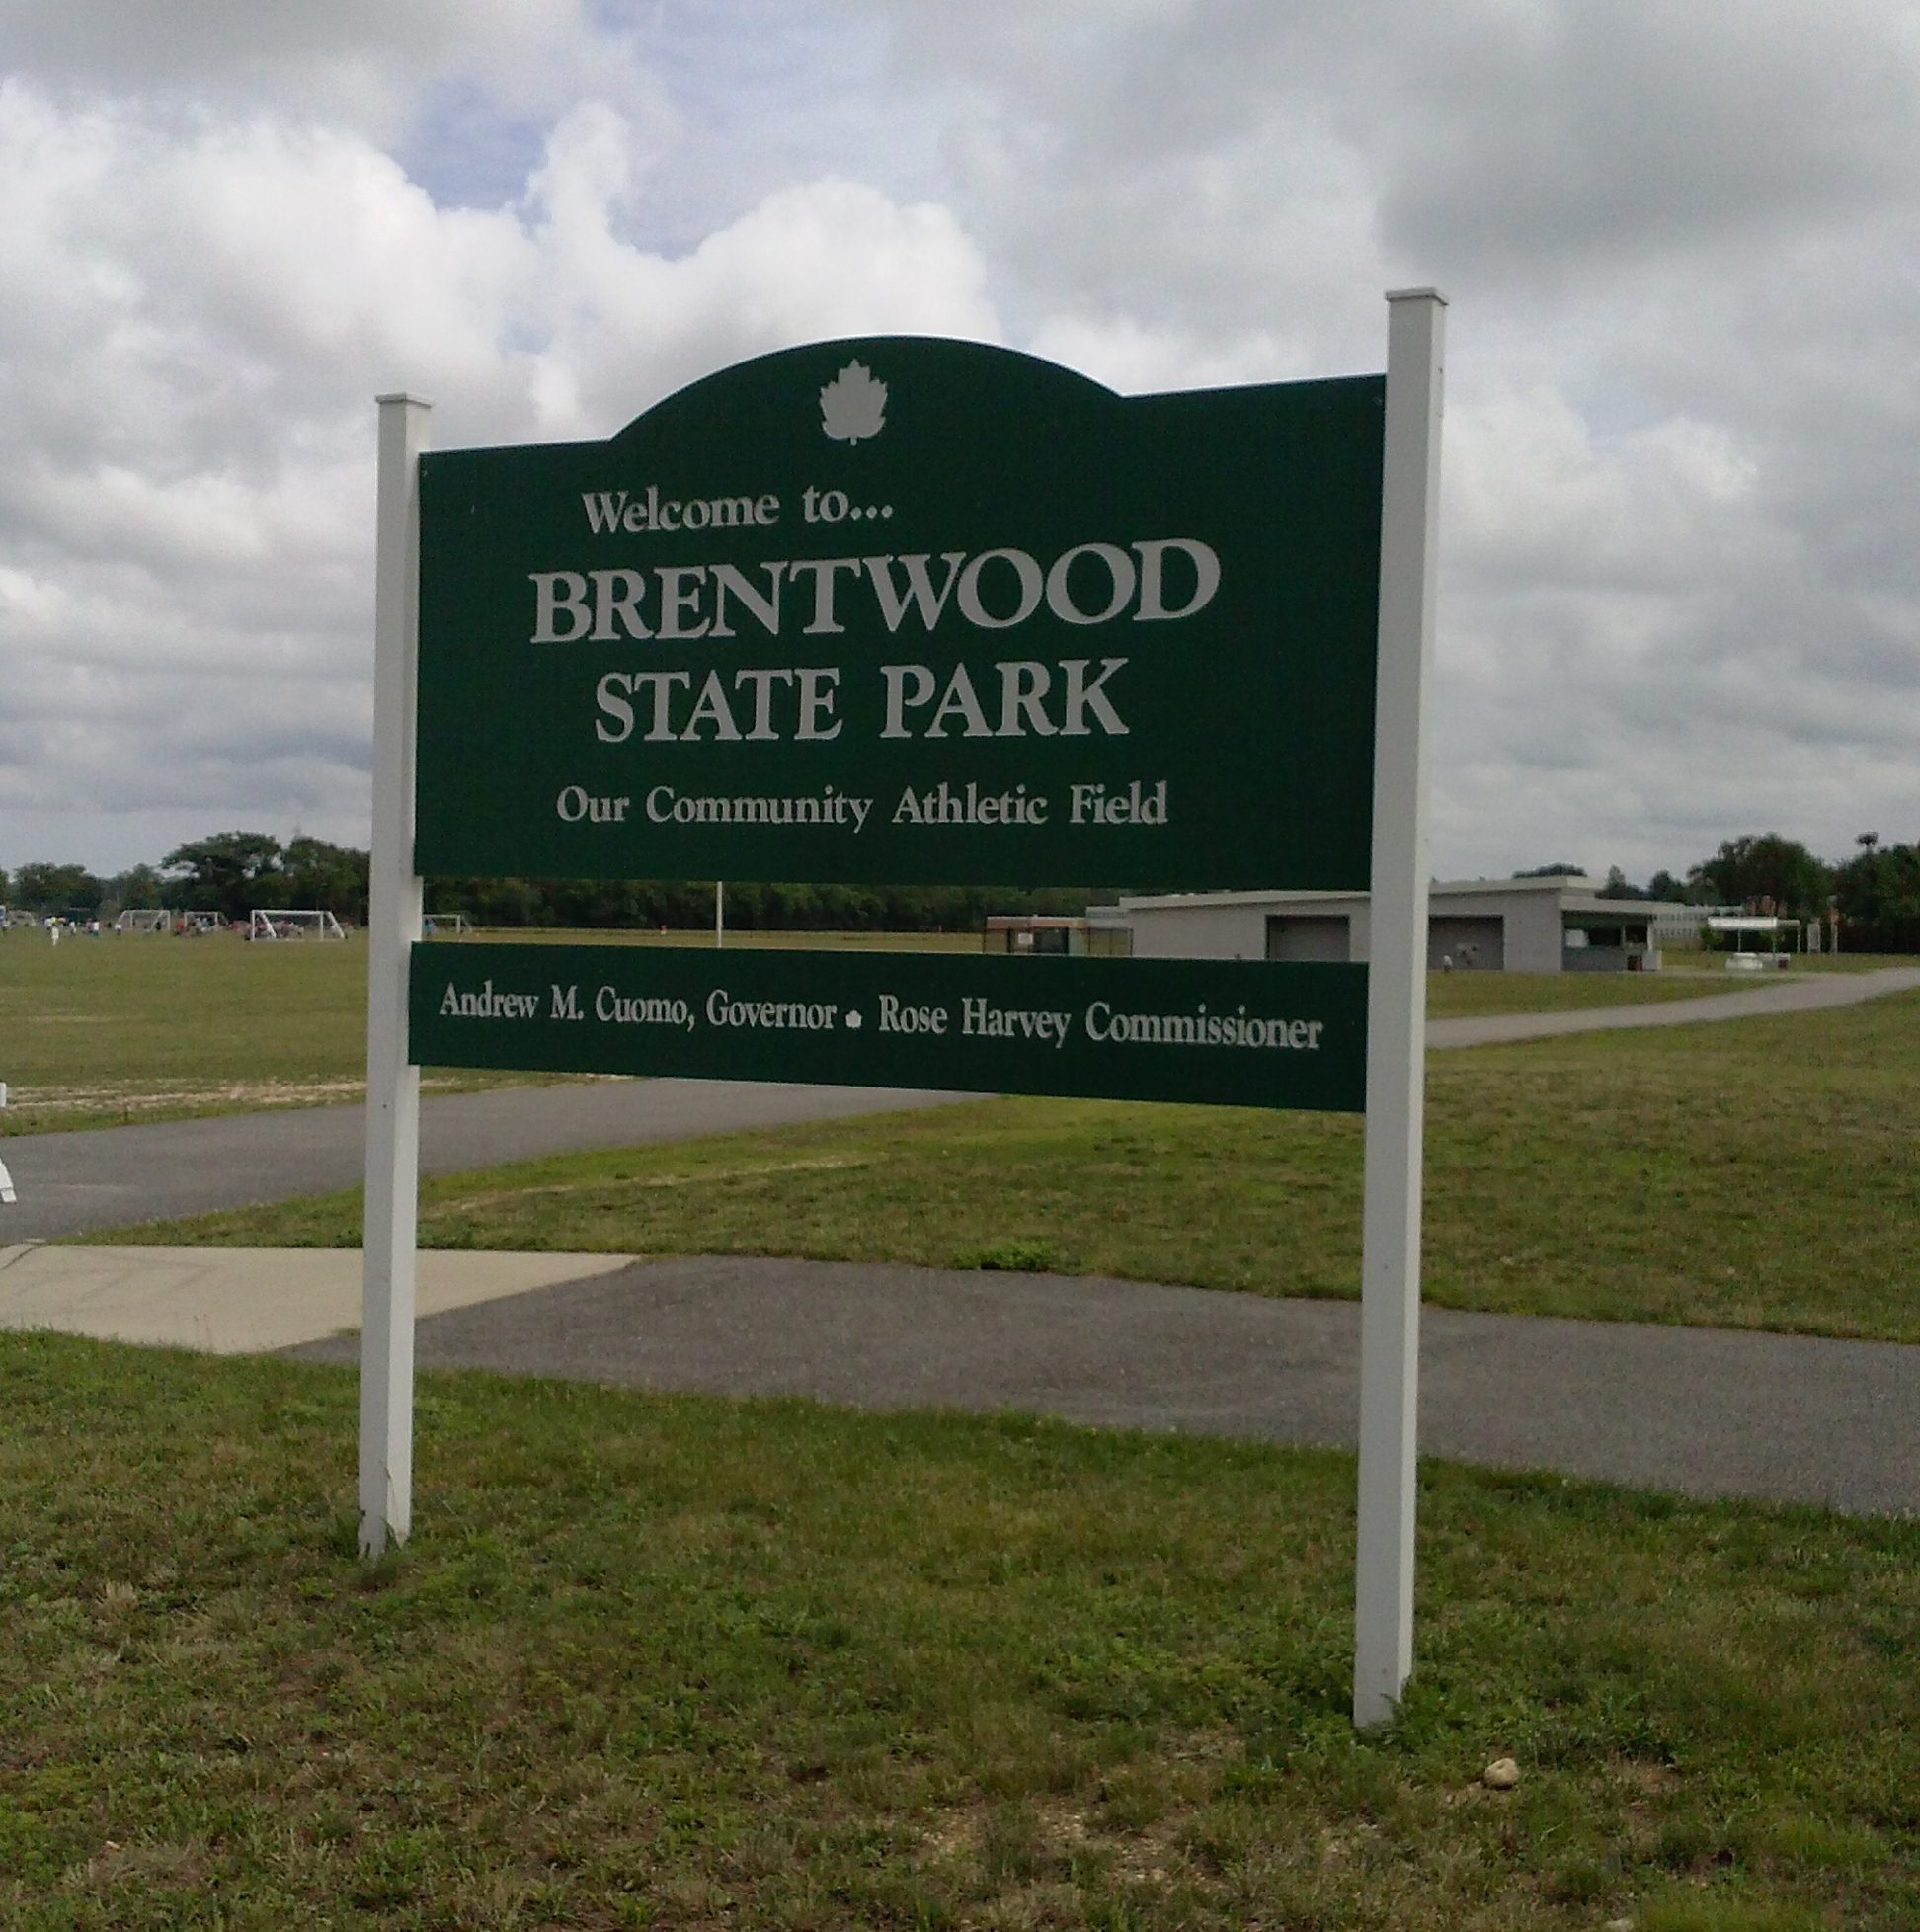 Brentwood State Park.....2 decades of Community Effort!